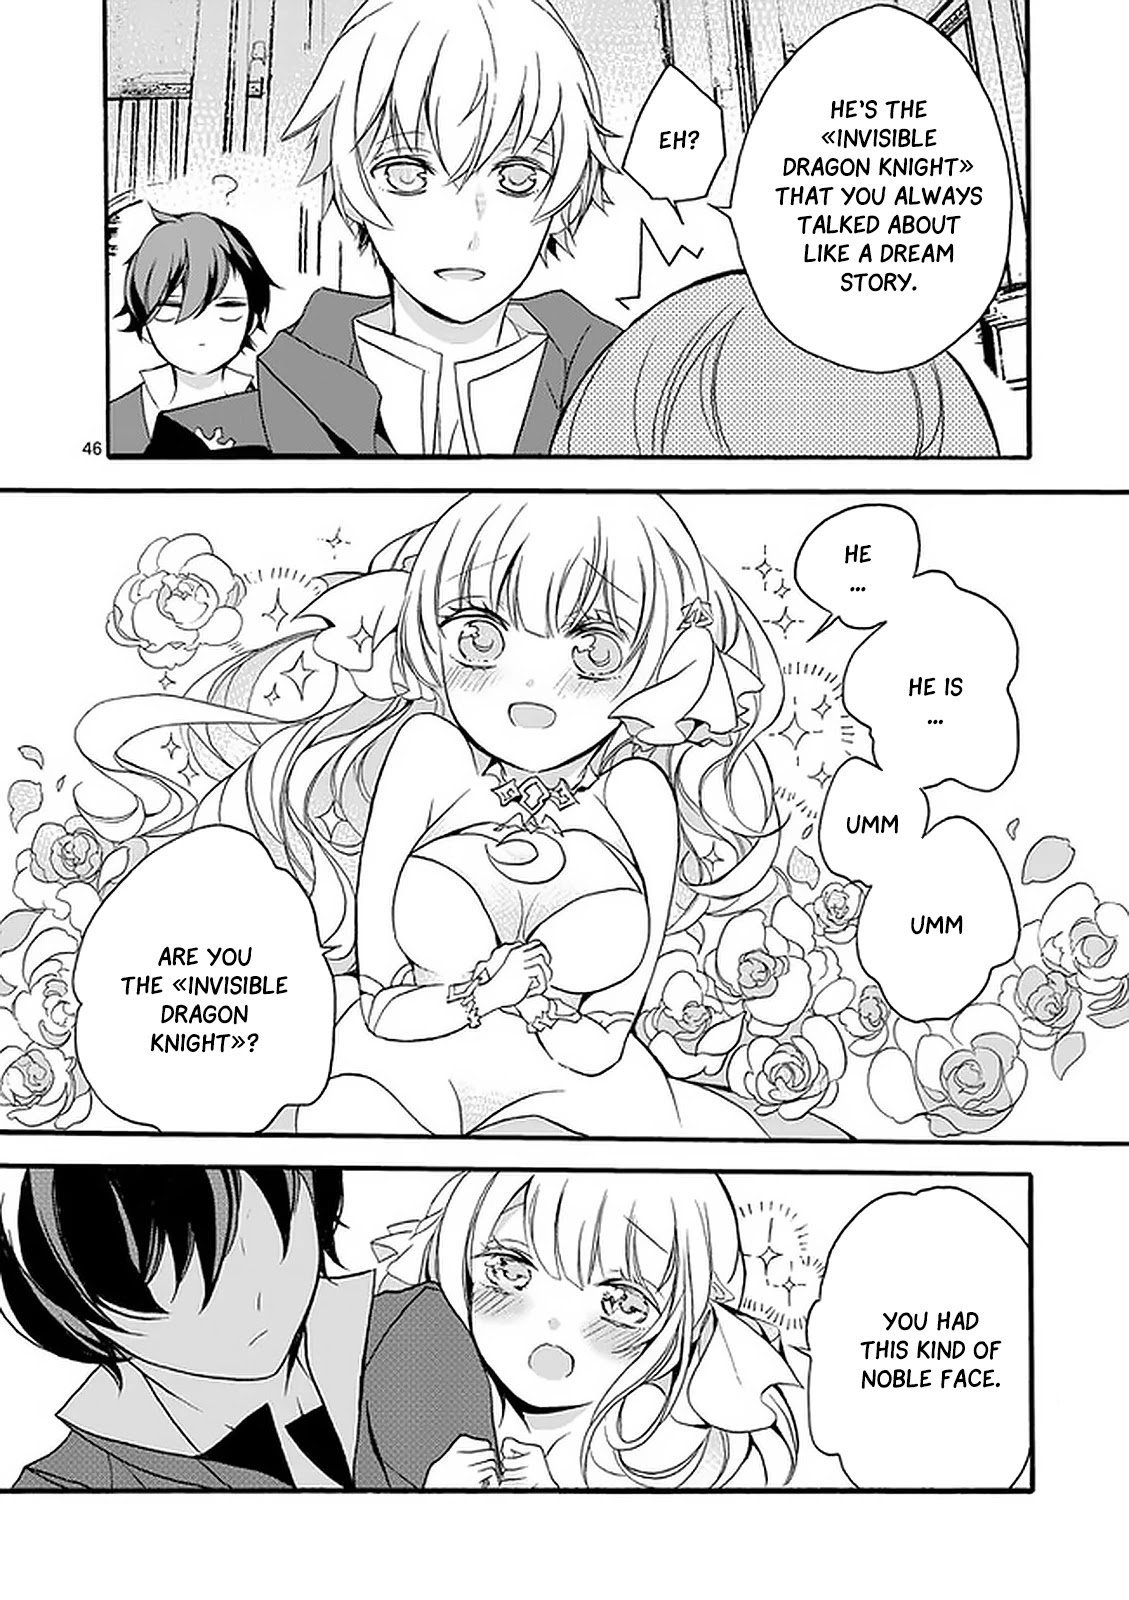 Manga From The Strongest Job of Dragon Knight, To The Beginner Job Carrier, Somehow, I Am Dependent On The Heroes - Chapter 2 Page 46